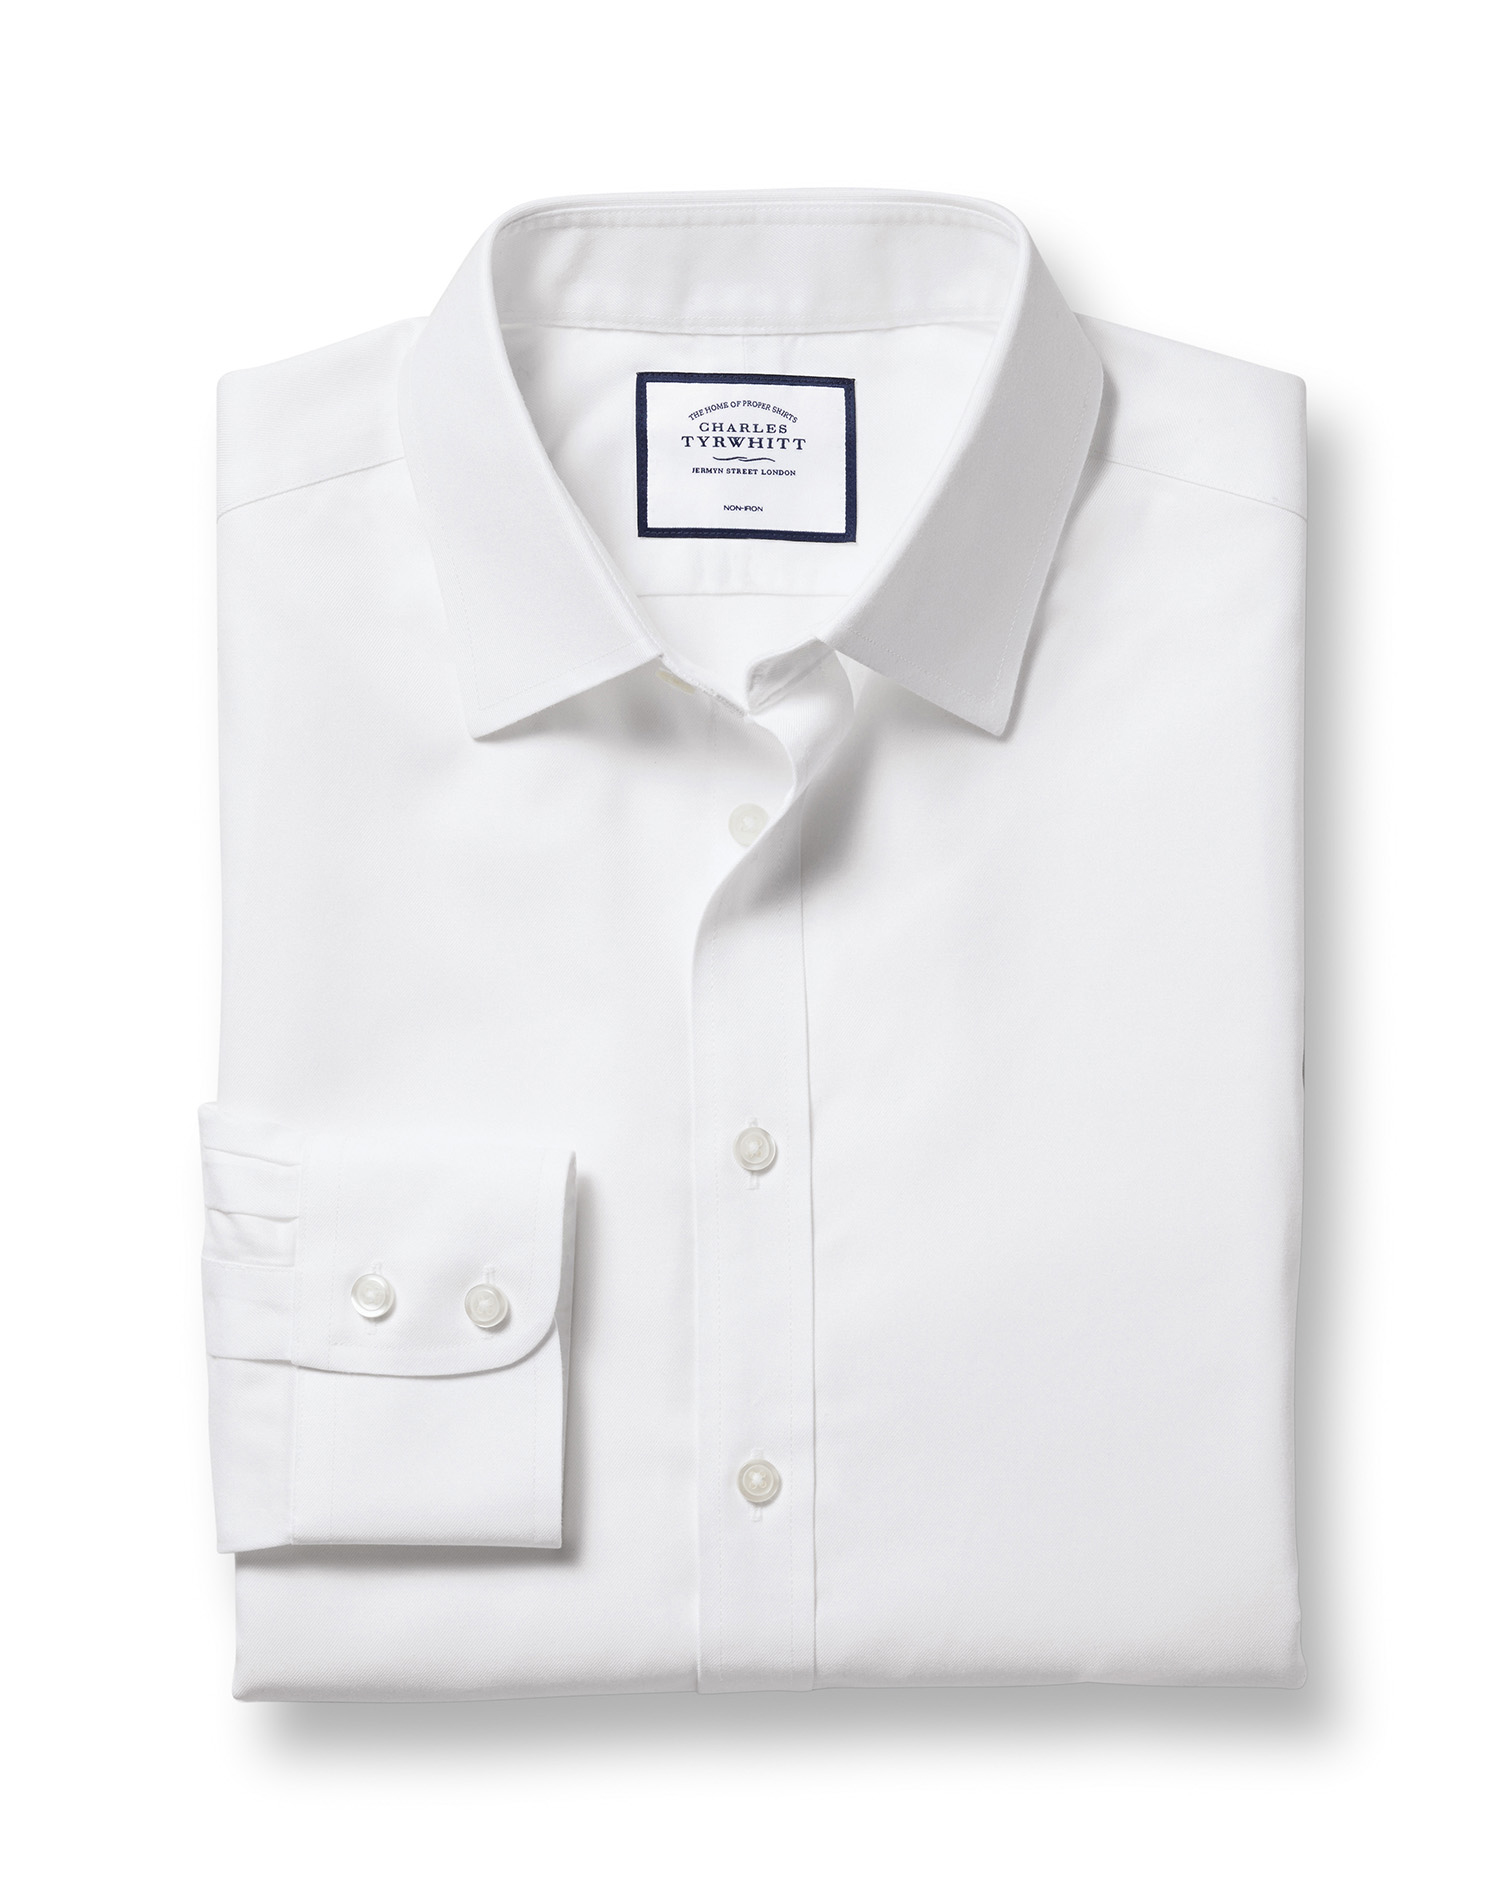 Slim Fit Non-Iron Twill White Cotton Formal Shirt Single Cuff Size 15.5/35 by Charles Tyrwhitt